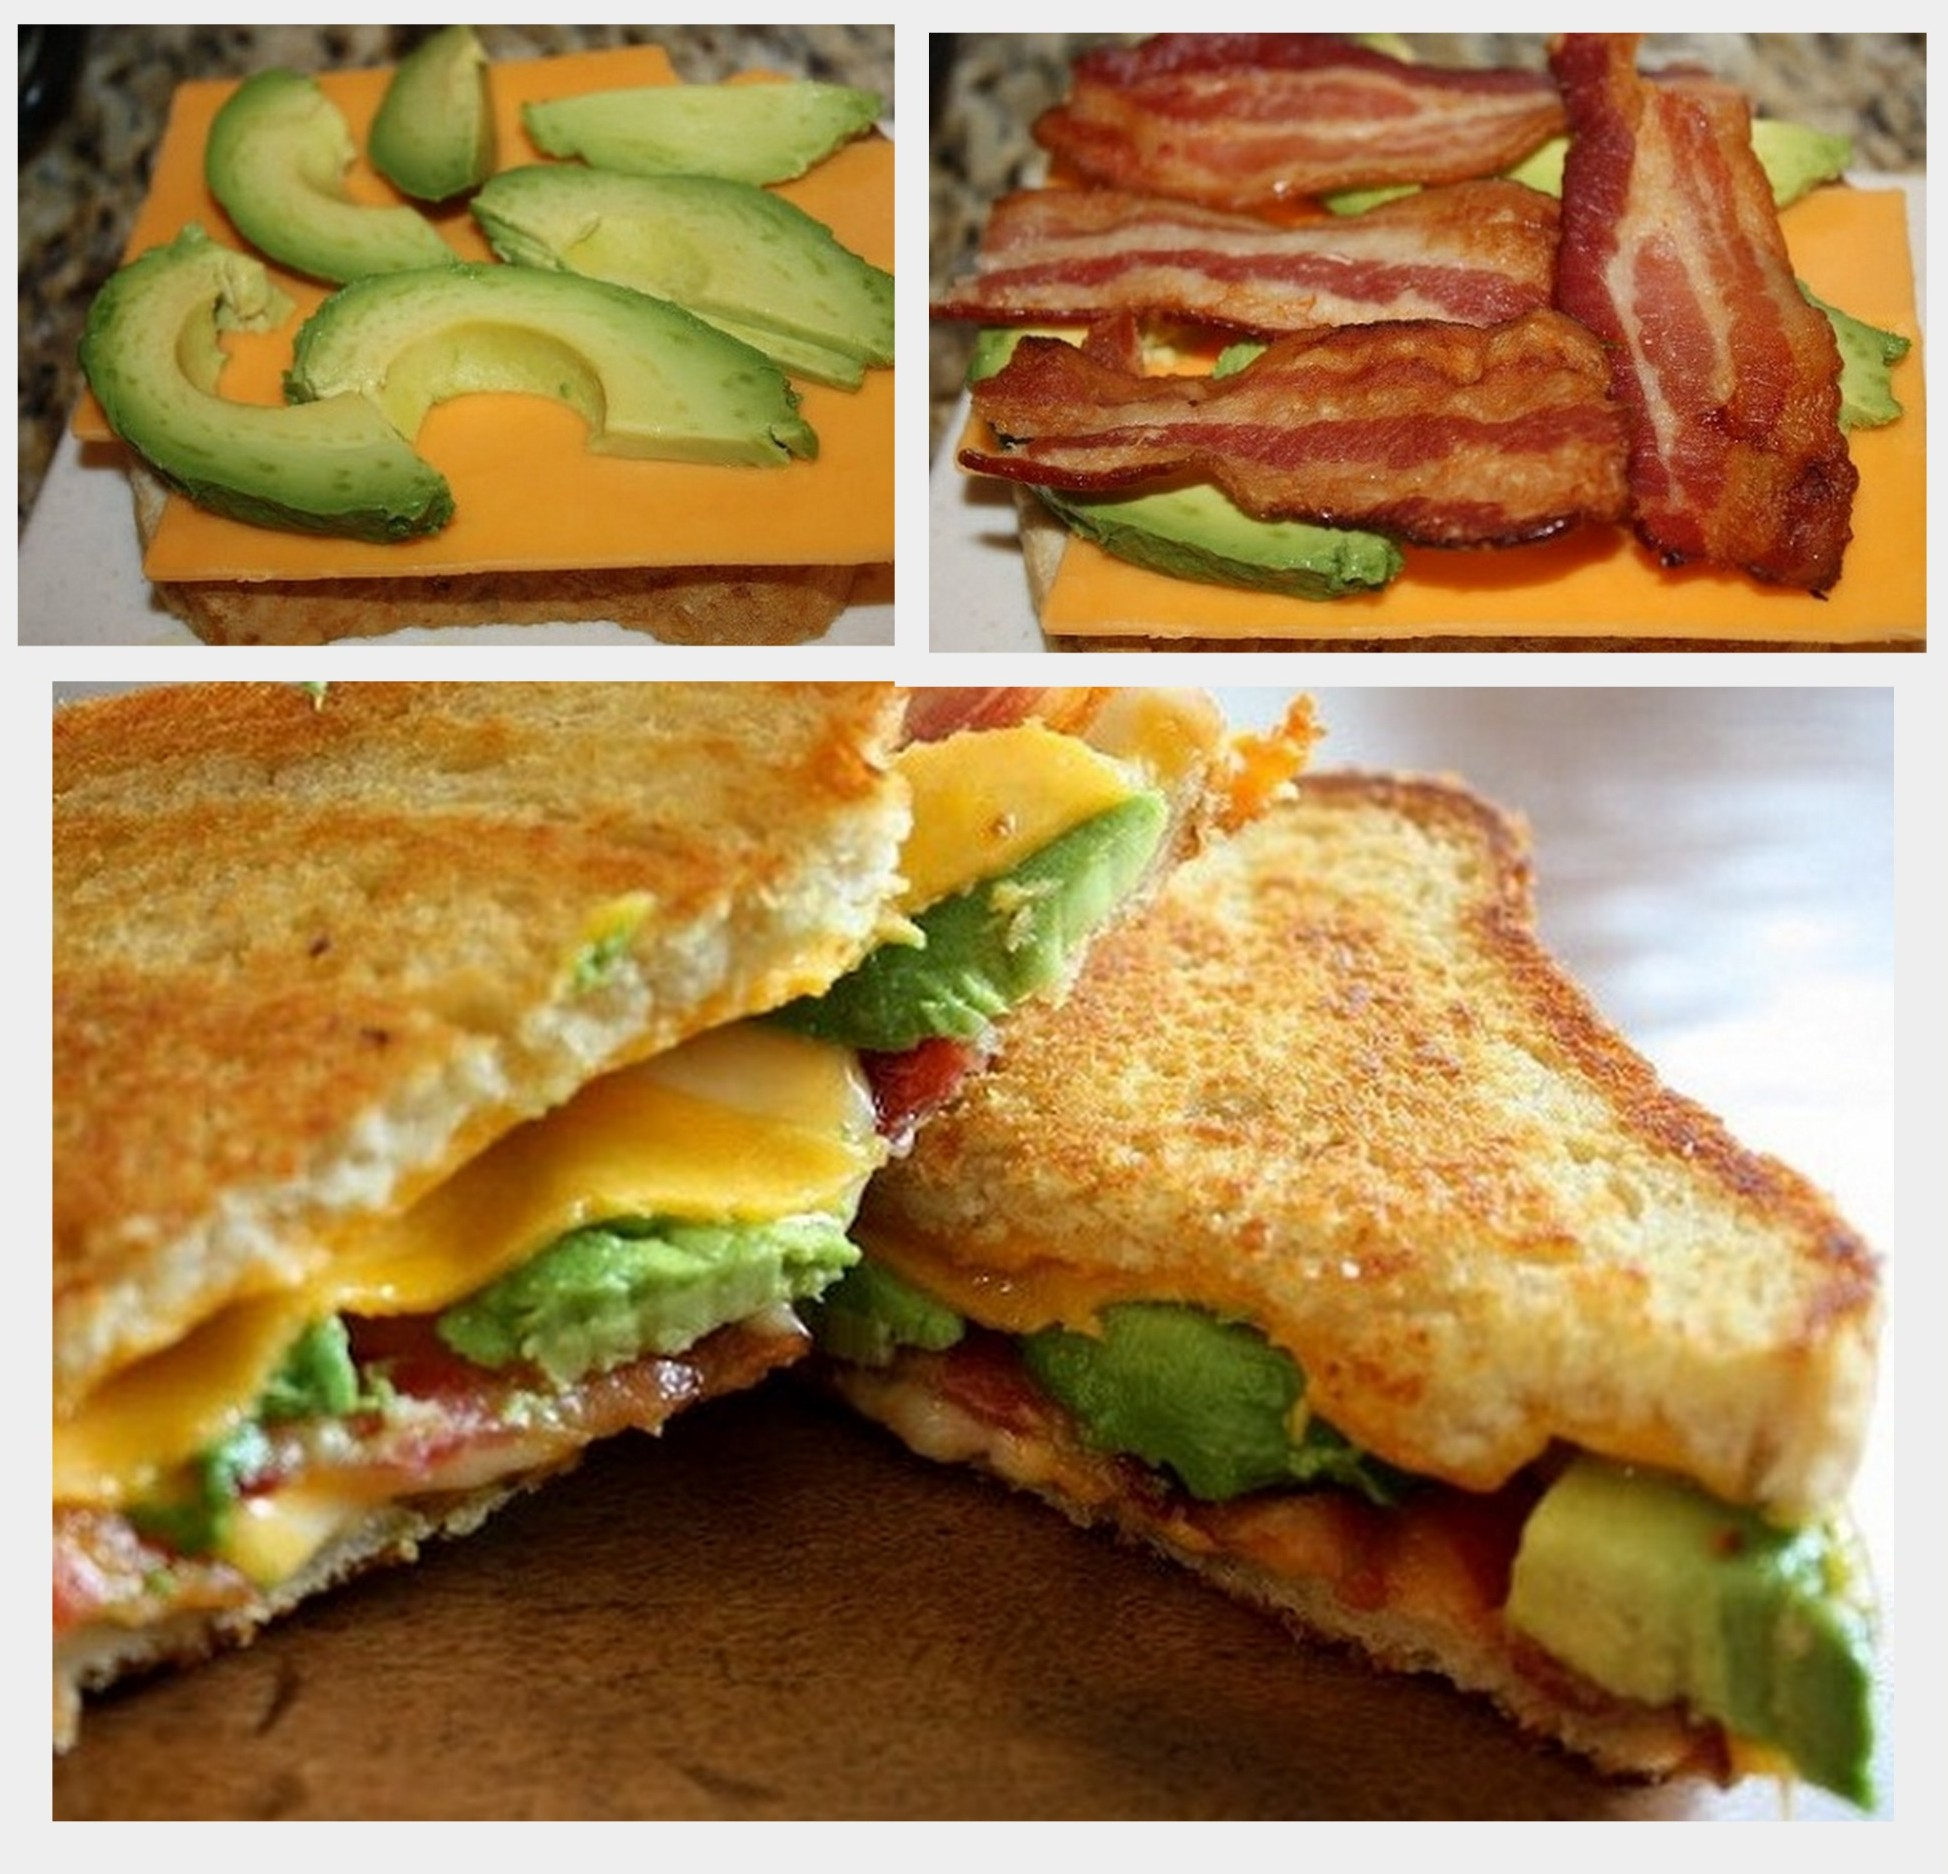 MyFridgeFood - Bacon Avocado Grilled Cheese